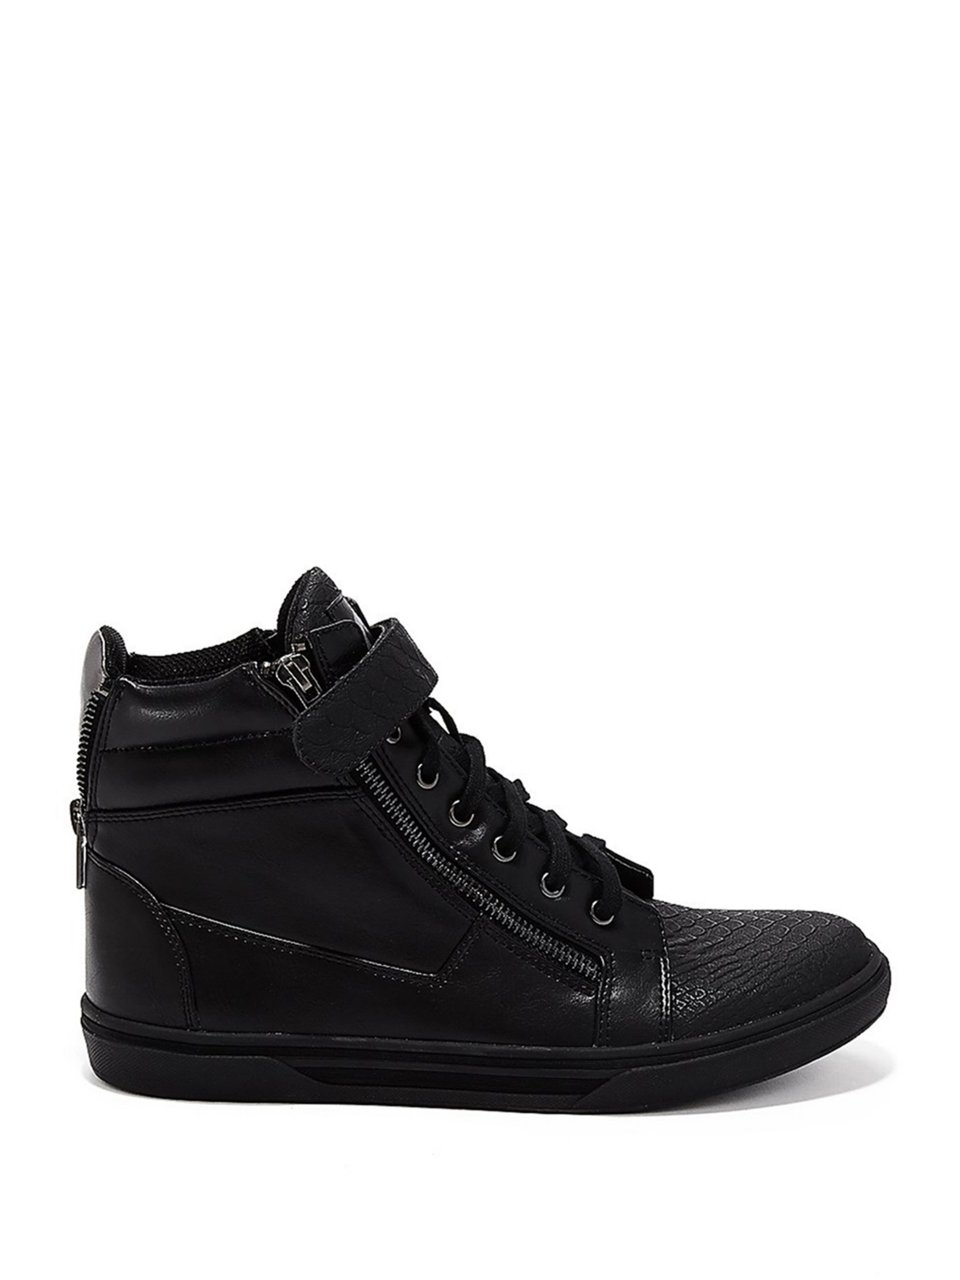 g by guess s sneakers ebay